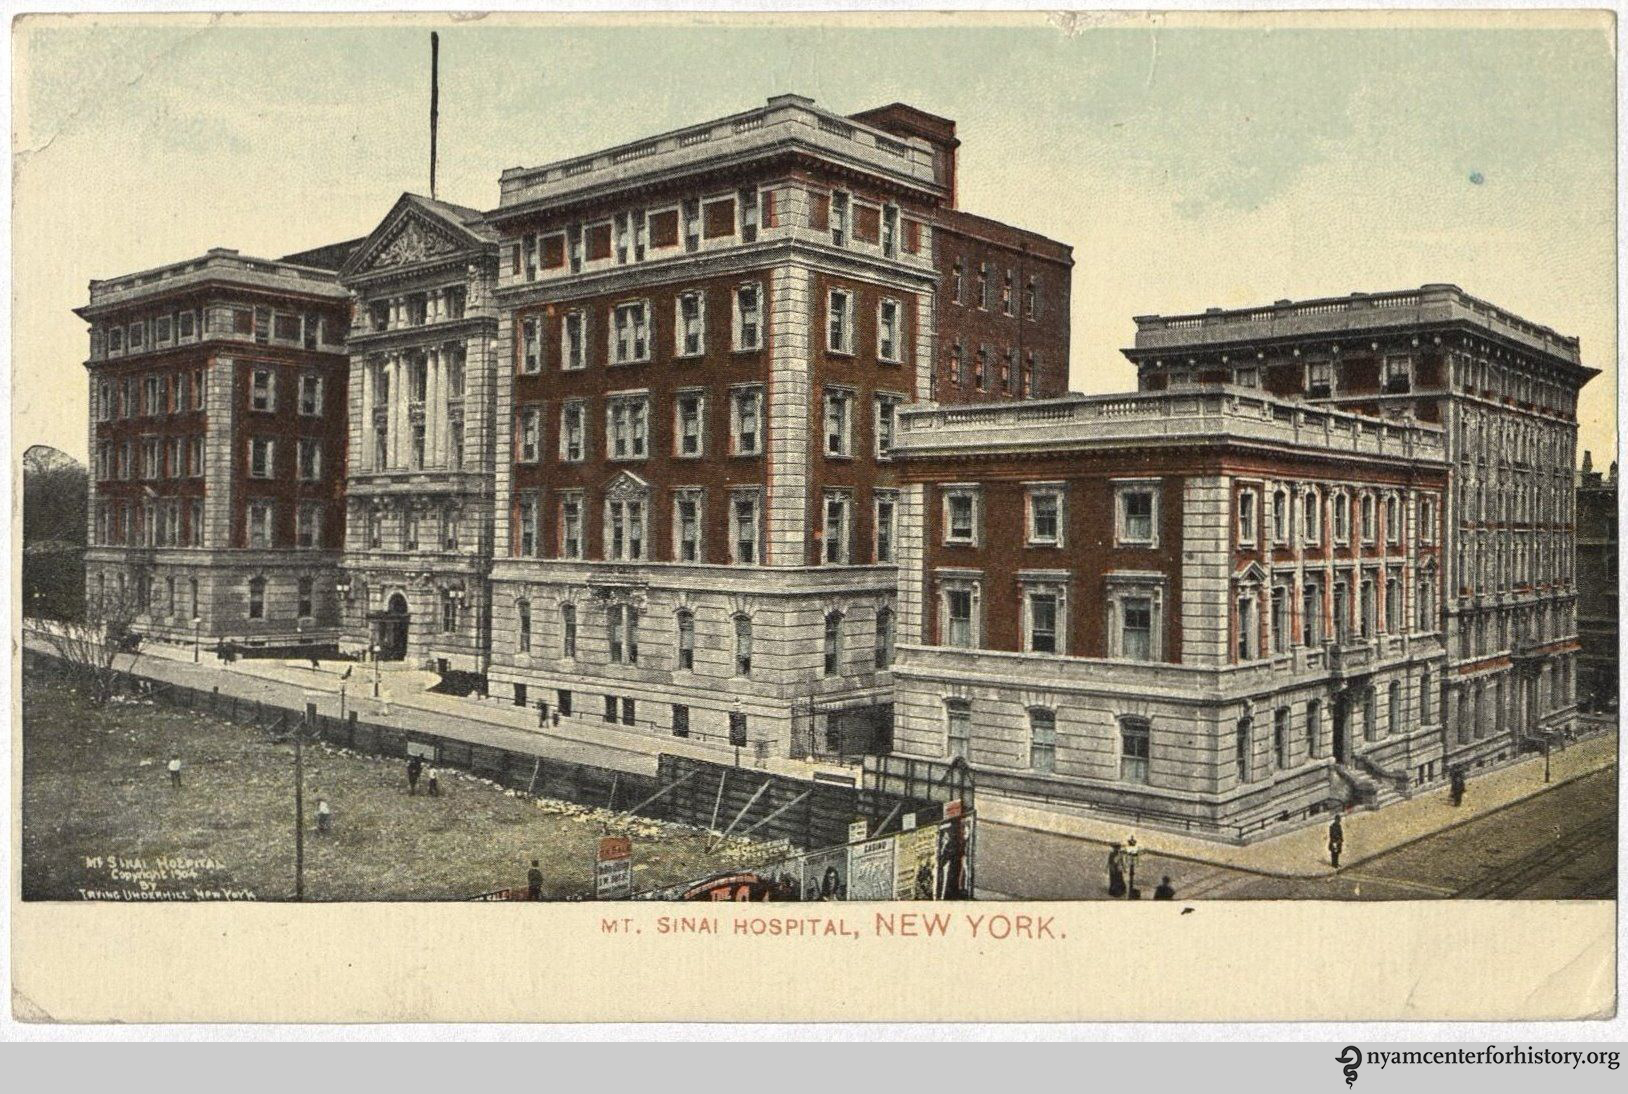 Building The Knick: New Hospitals of the Turn of the Century